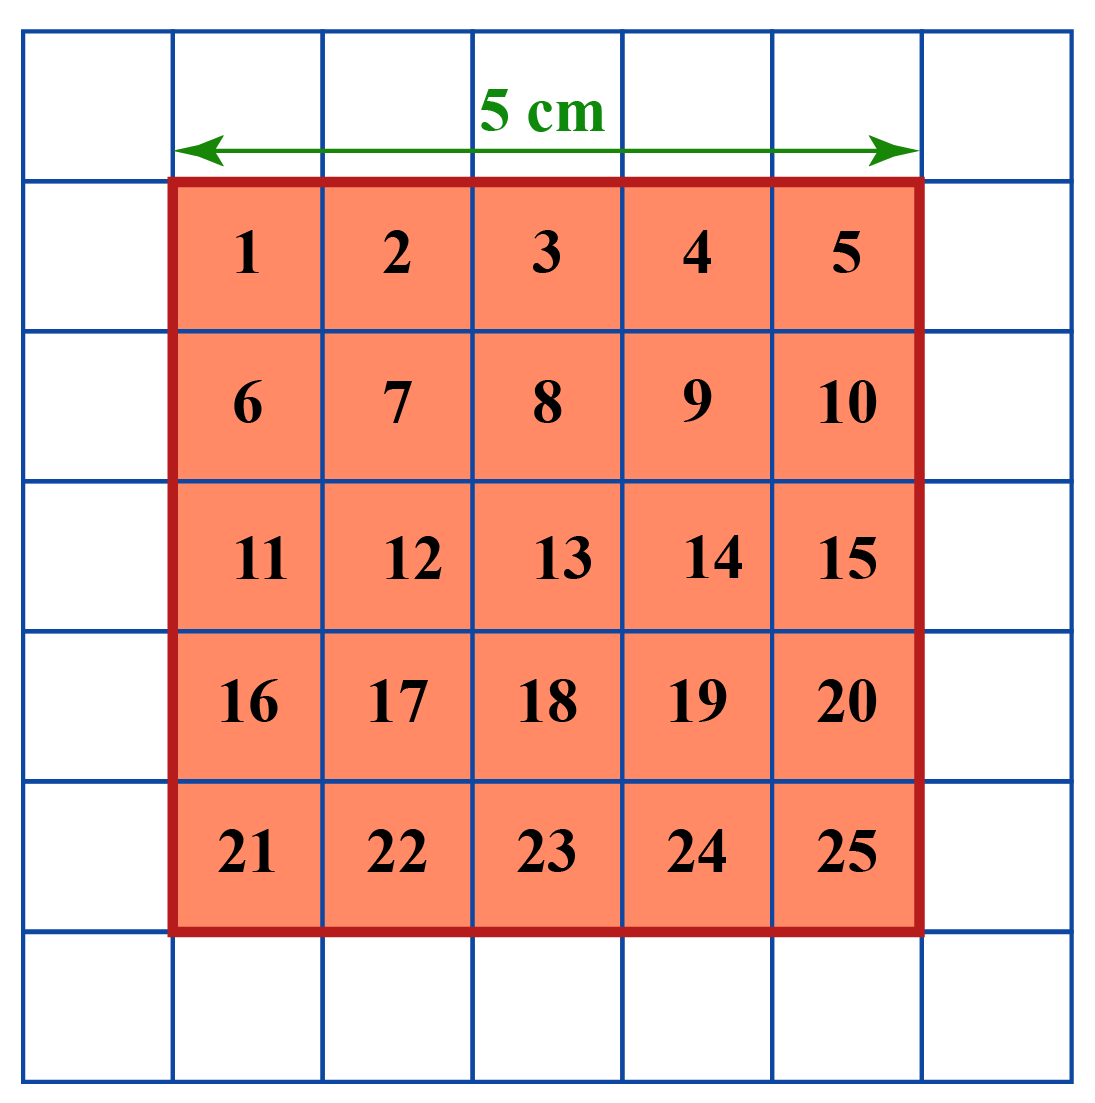 Area of a square - There is an orange square within another square. The orange square is further divided into 25 square units with numbers written inside each of the individual units.